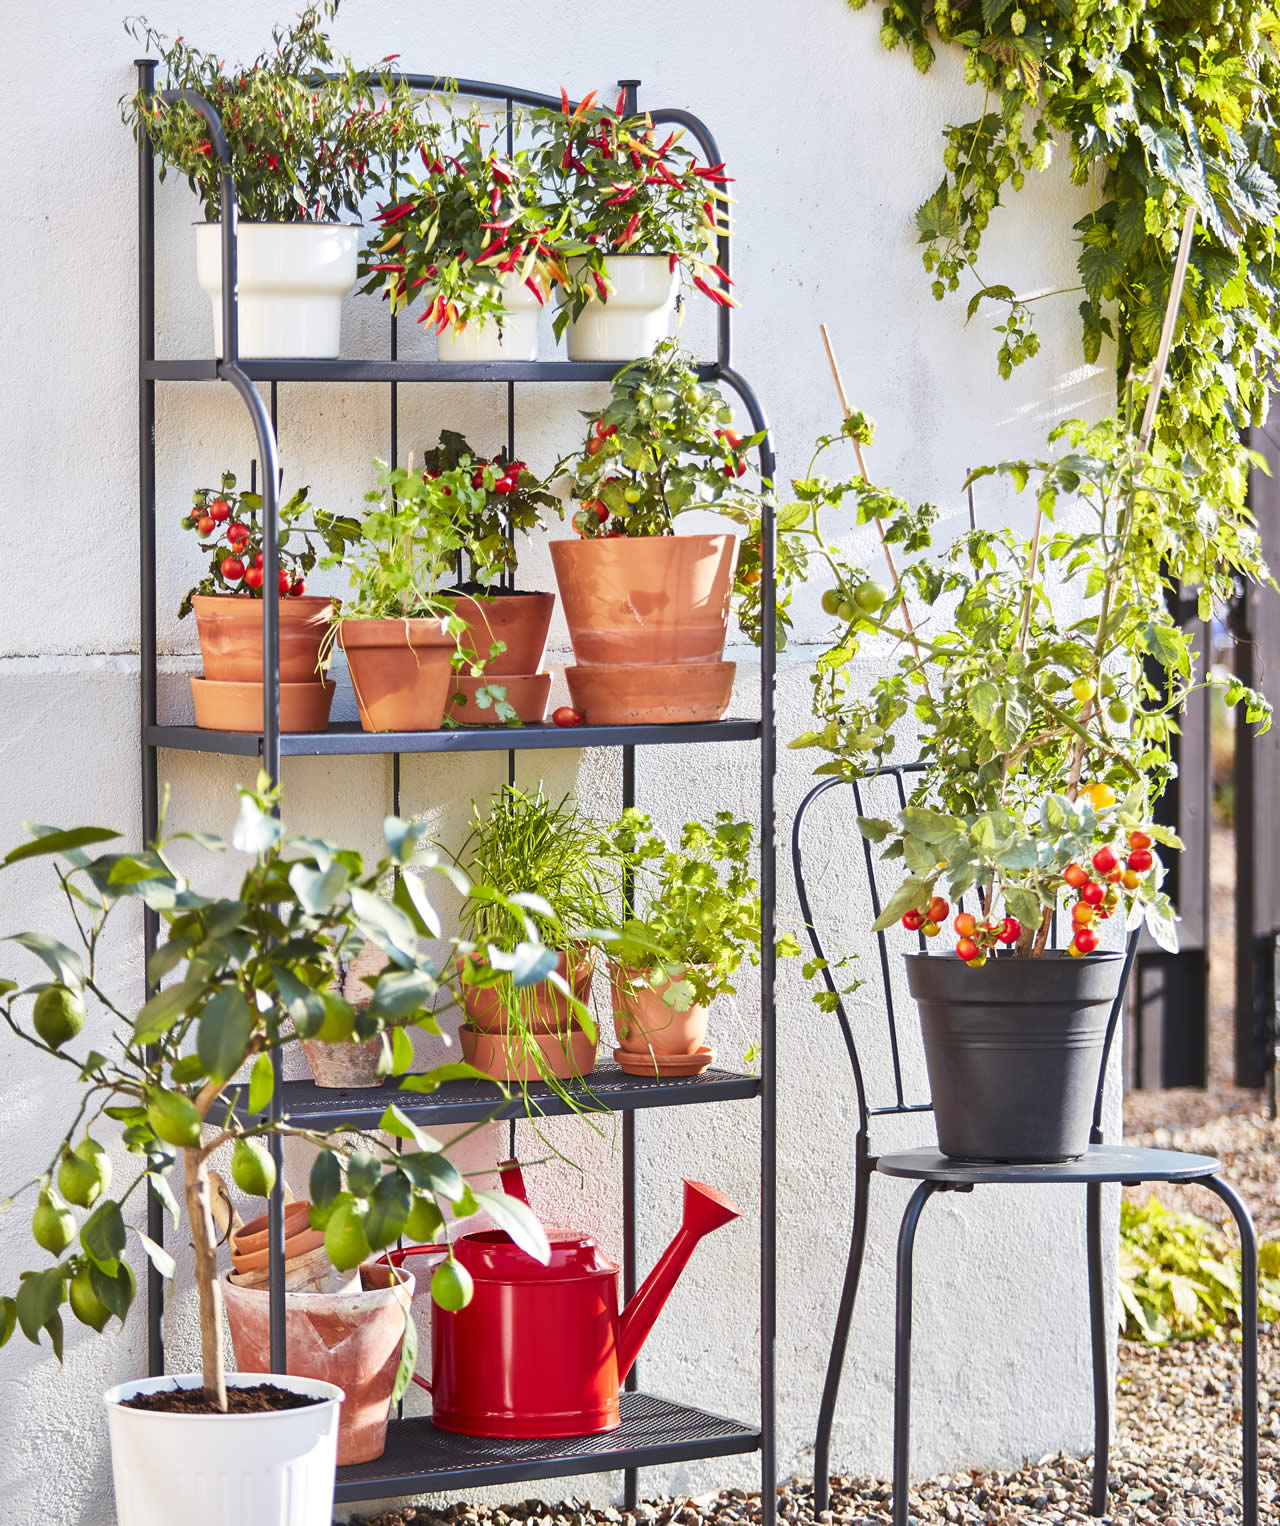 IKEA Ideas - It's the season for planting kits